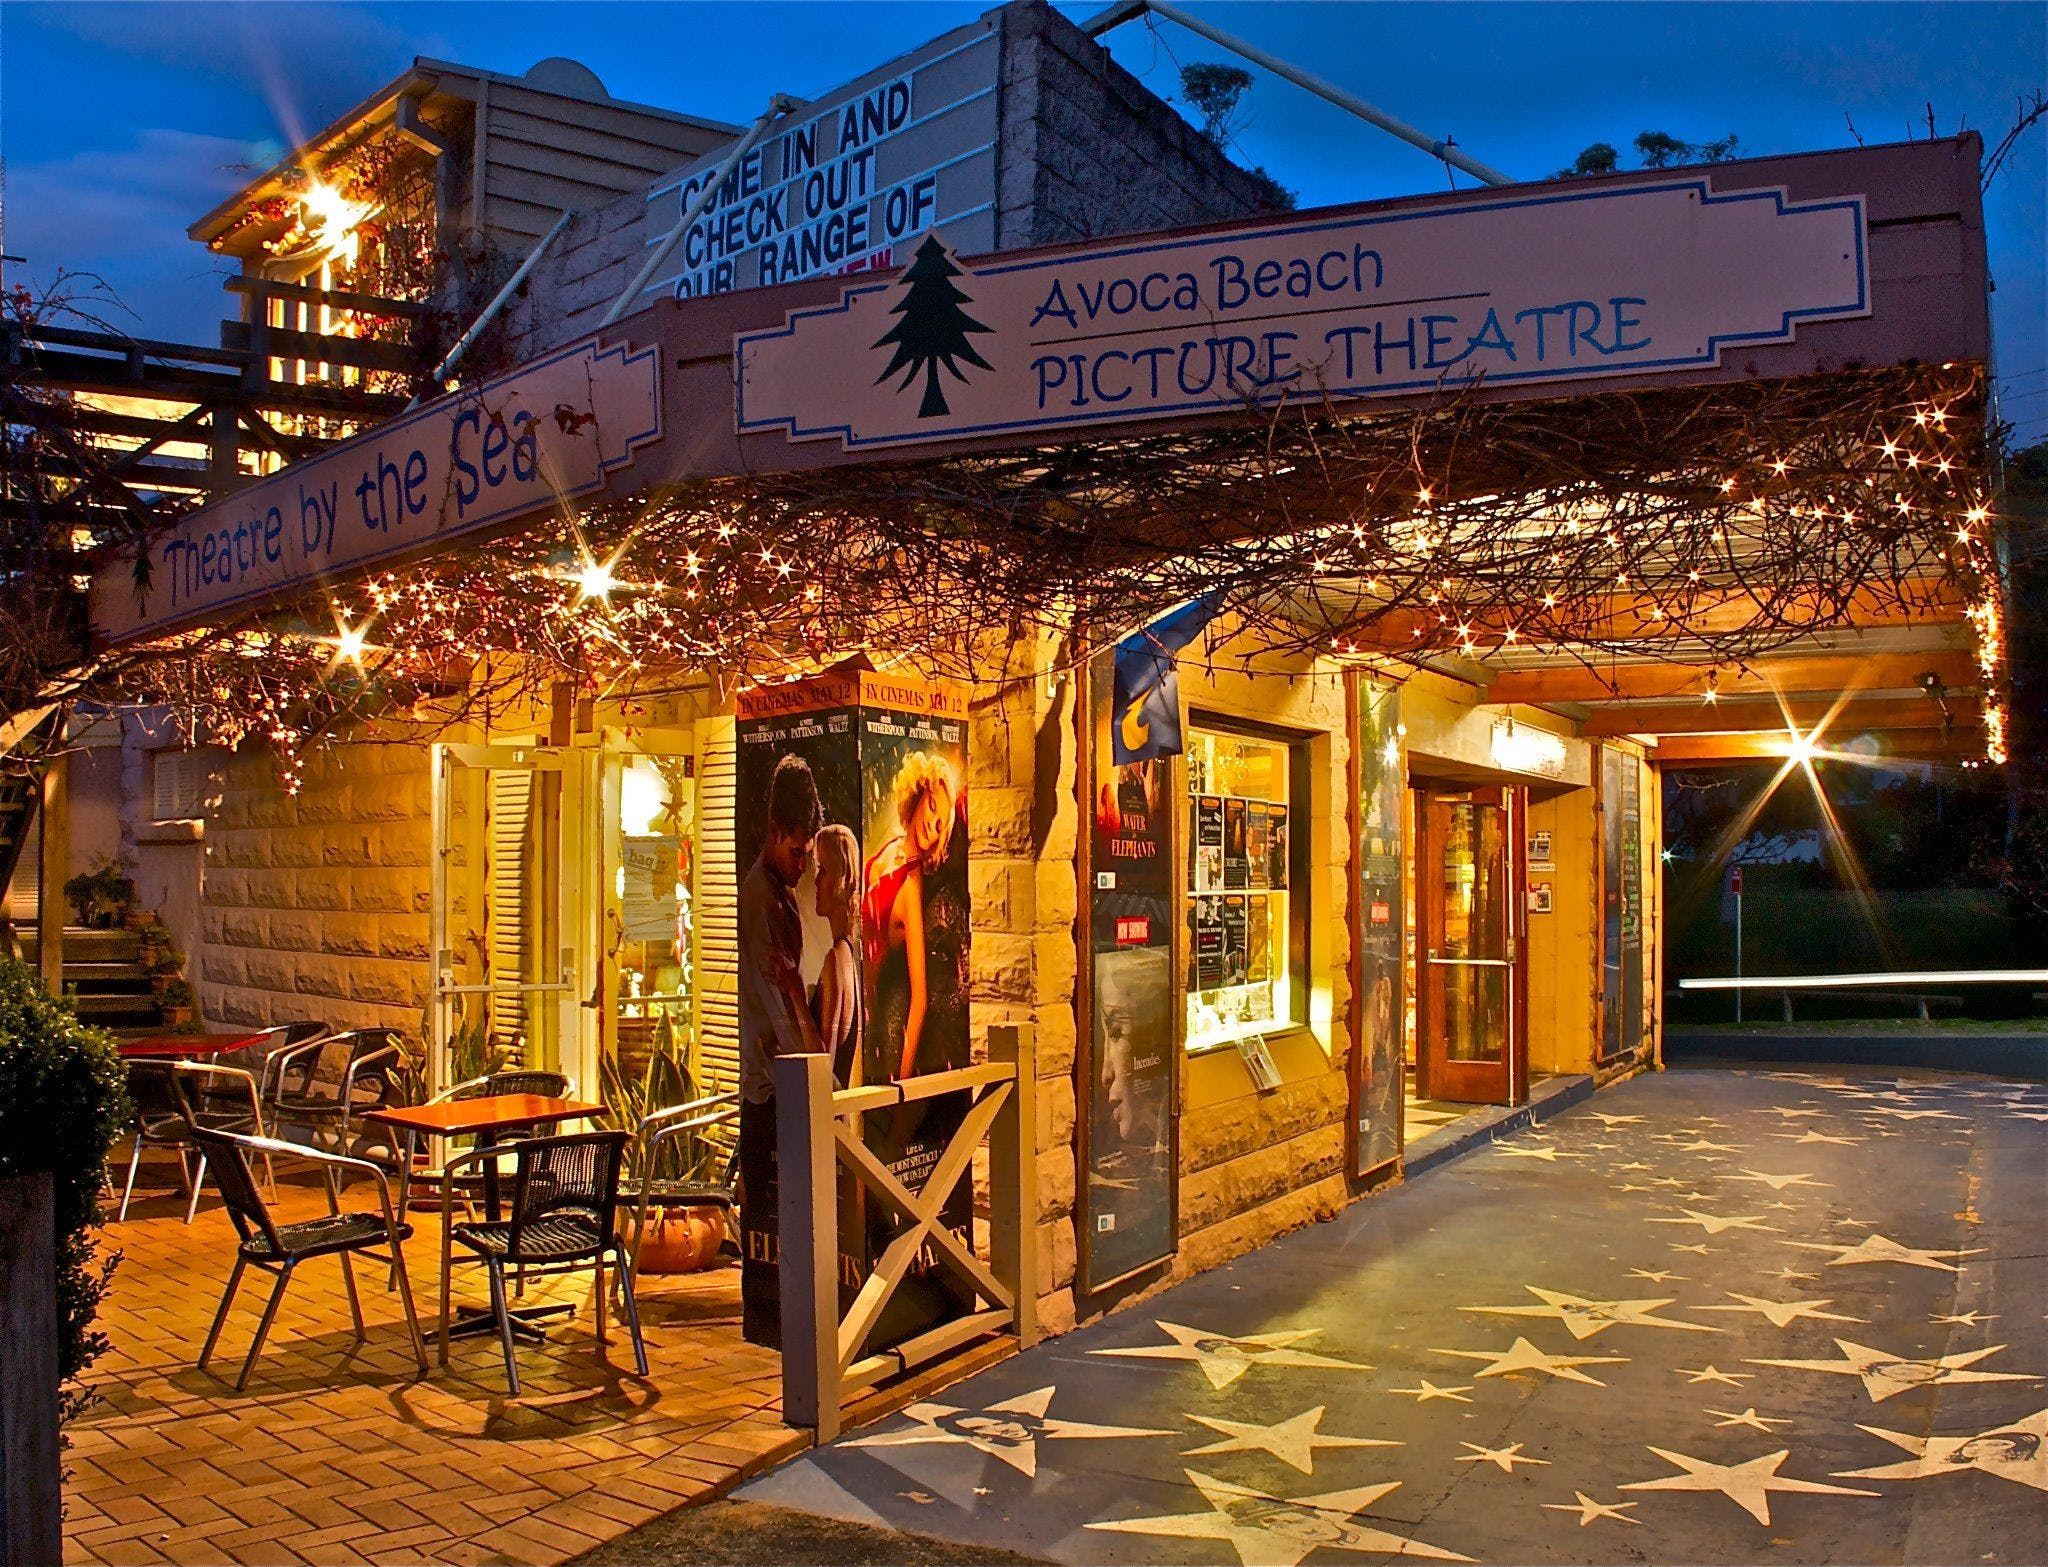 Avoca Beach Picture Theatre - tourismnoosa.com